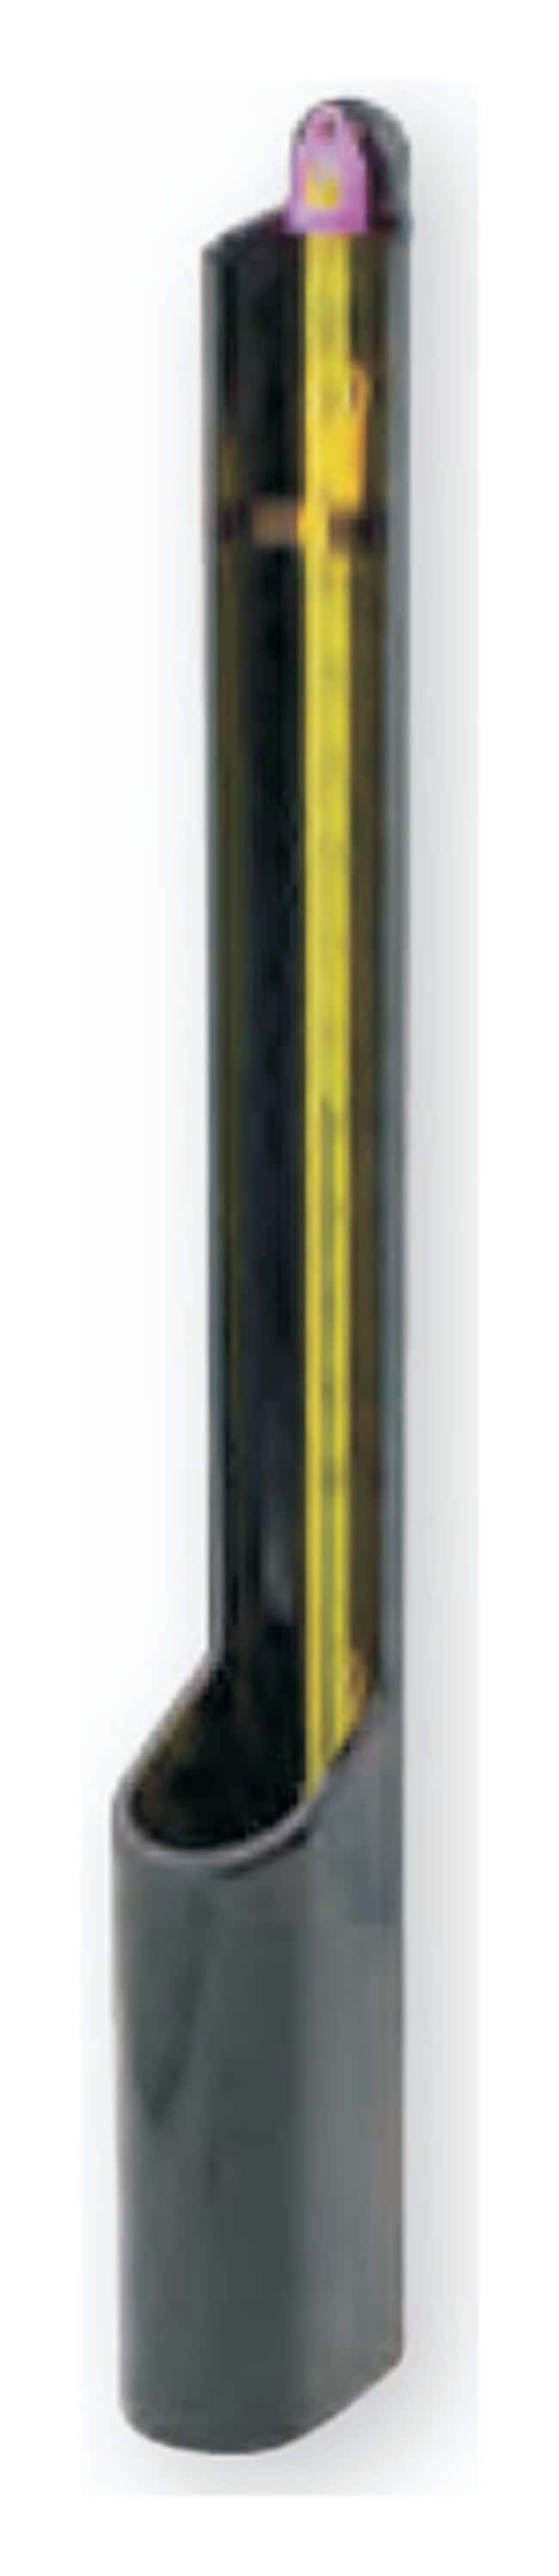 H-B InstrumentEasy-Read Environmentally Friendly Liquid-In-Glass Tank Thermometers:Thermometers